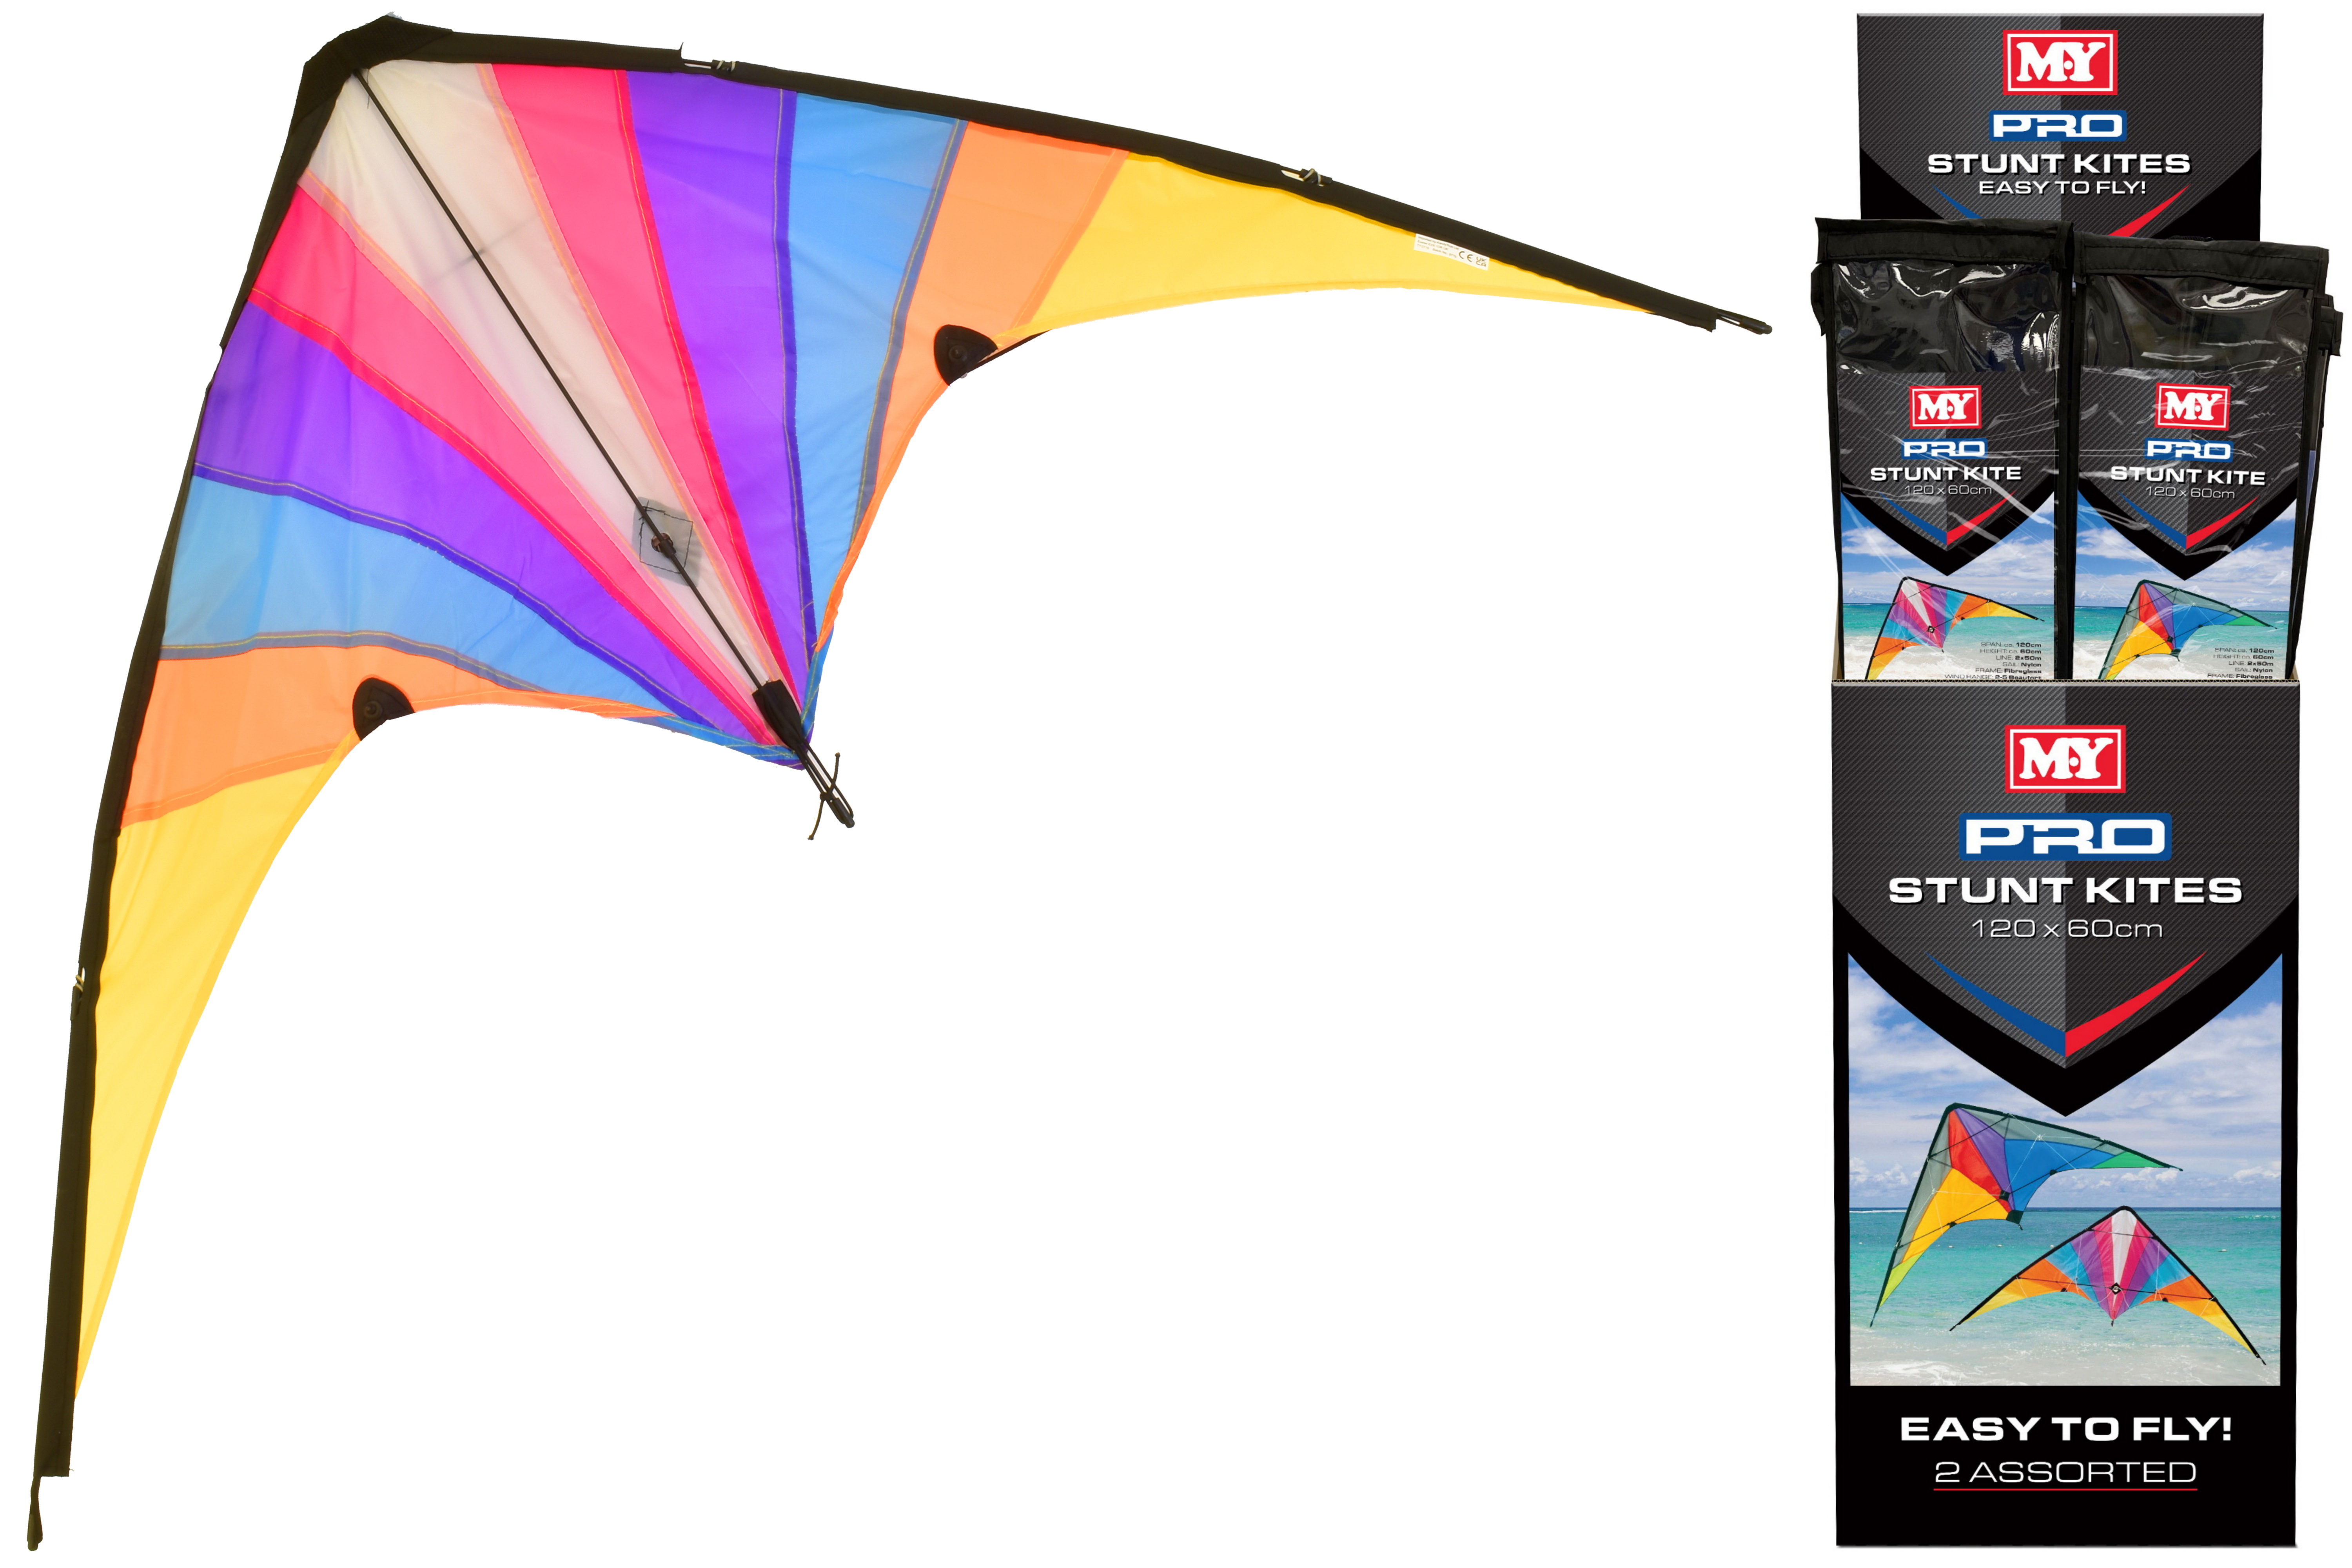 120cm x 60cm Stunt Kite (2 Assorted) In Display Box